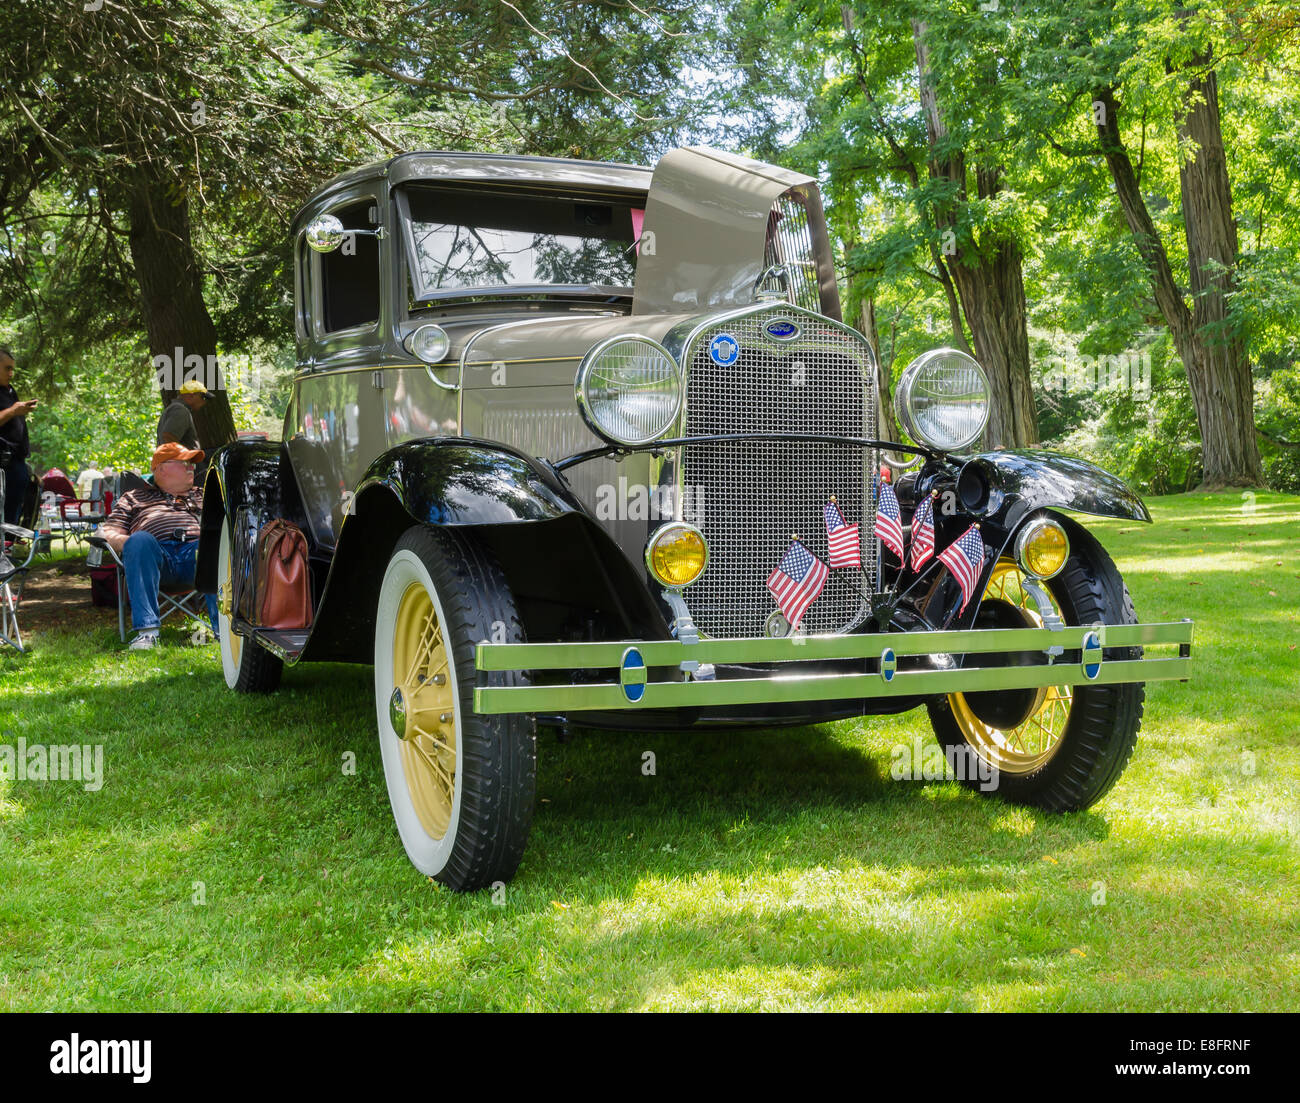 Ford Model A Motorcar at a car show in Upstate New York, USA. - Stock Image